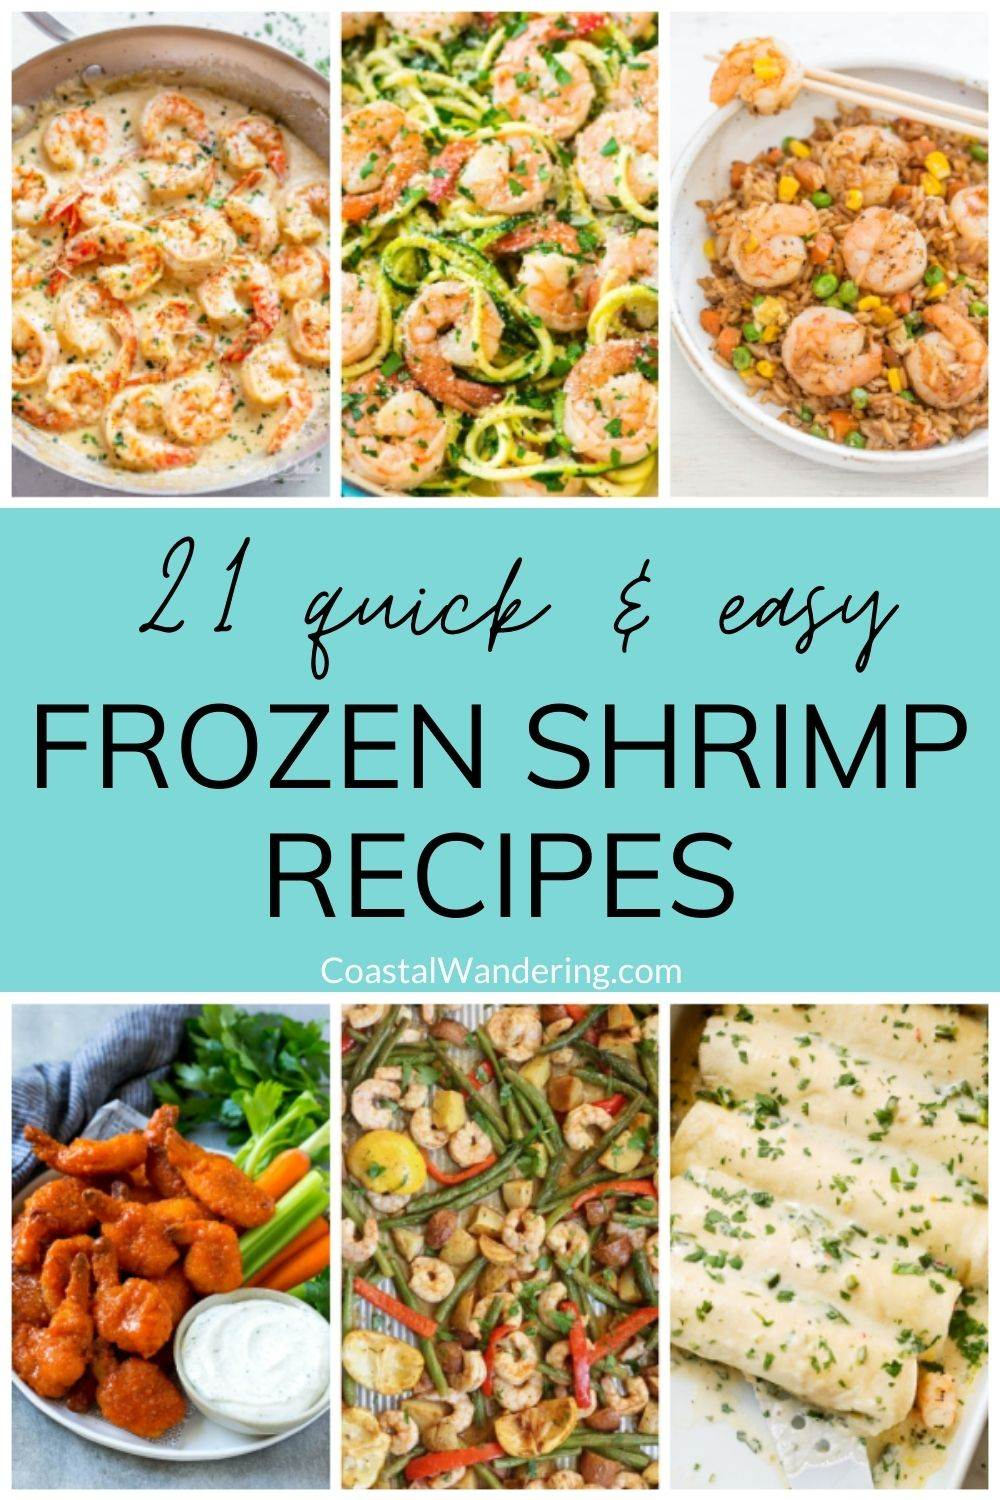 21 Easy Frozen Shrimp Recipes For The Best Quick Dinners